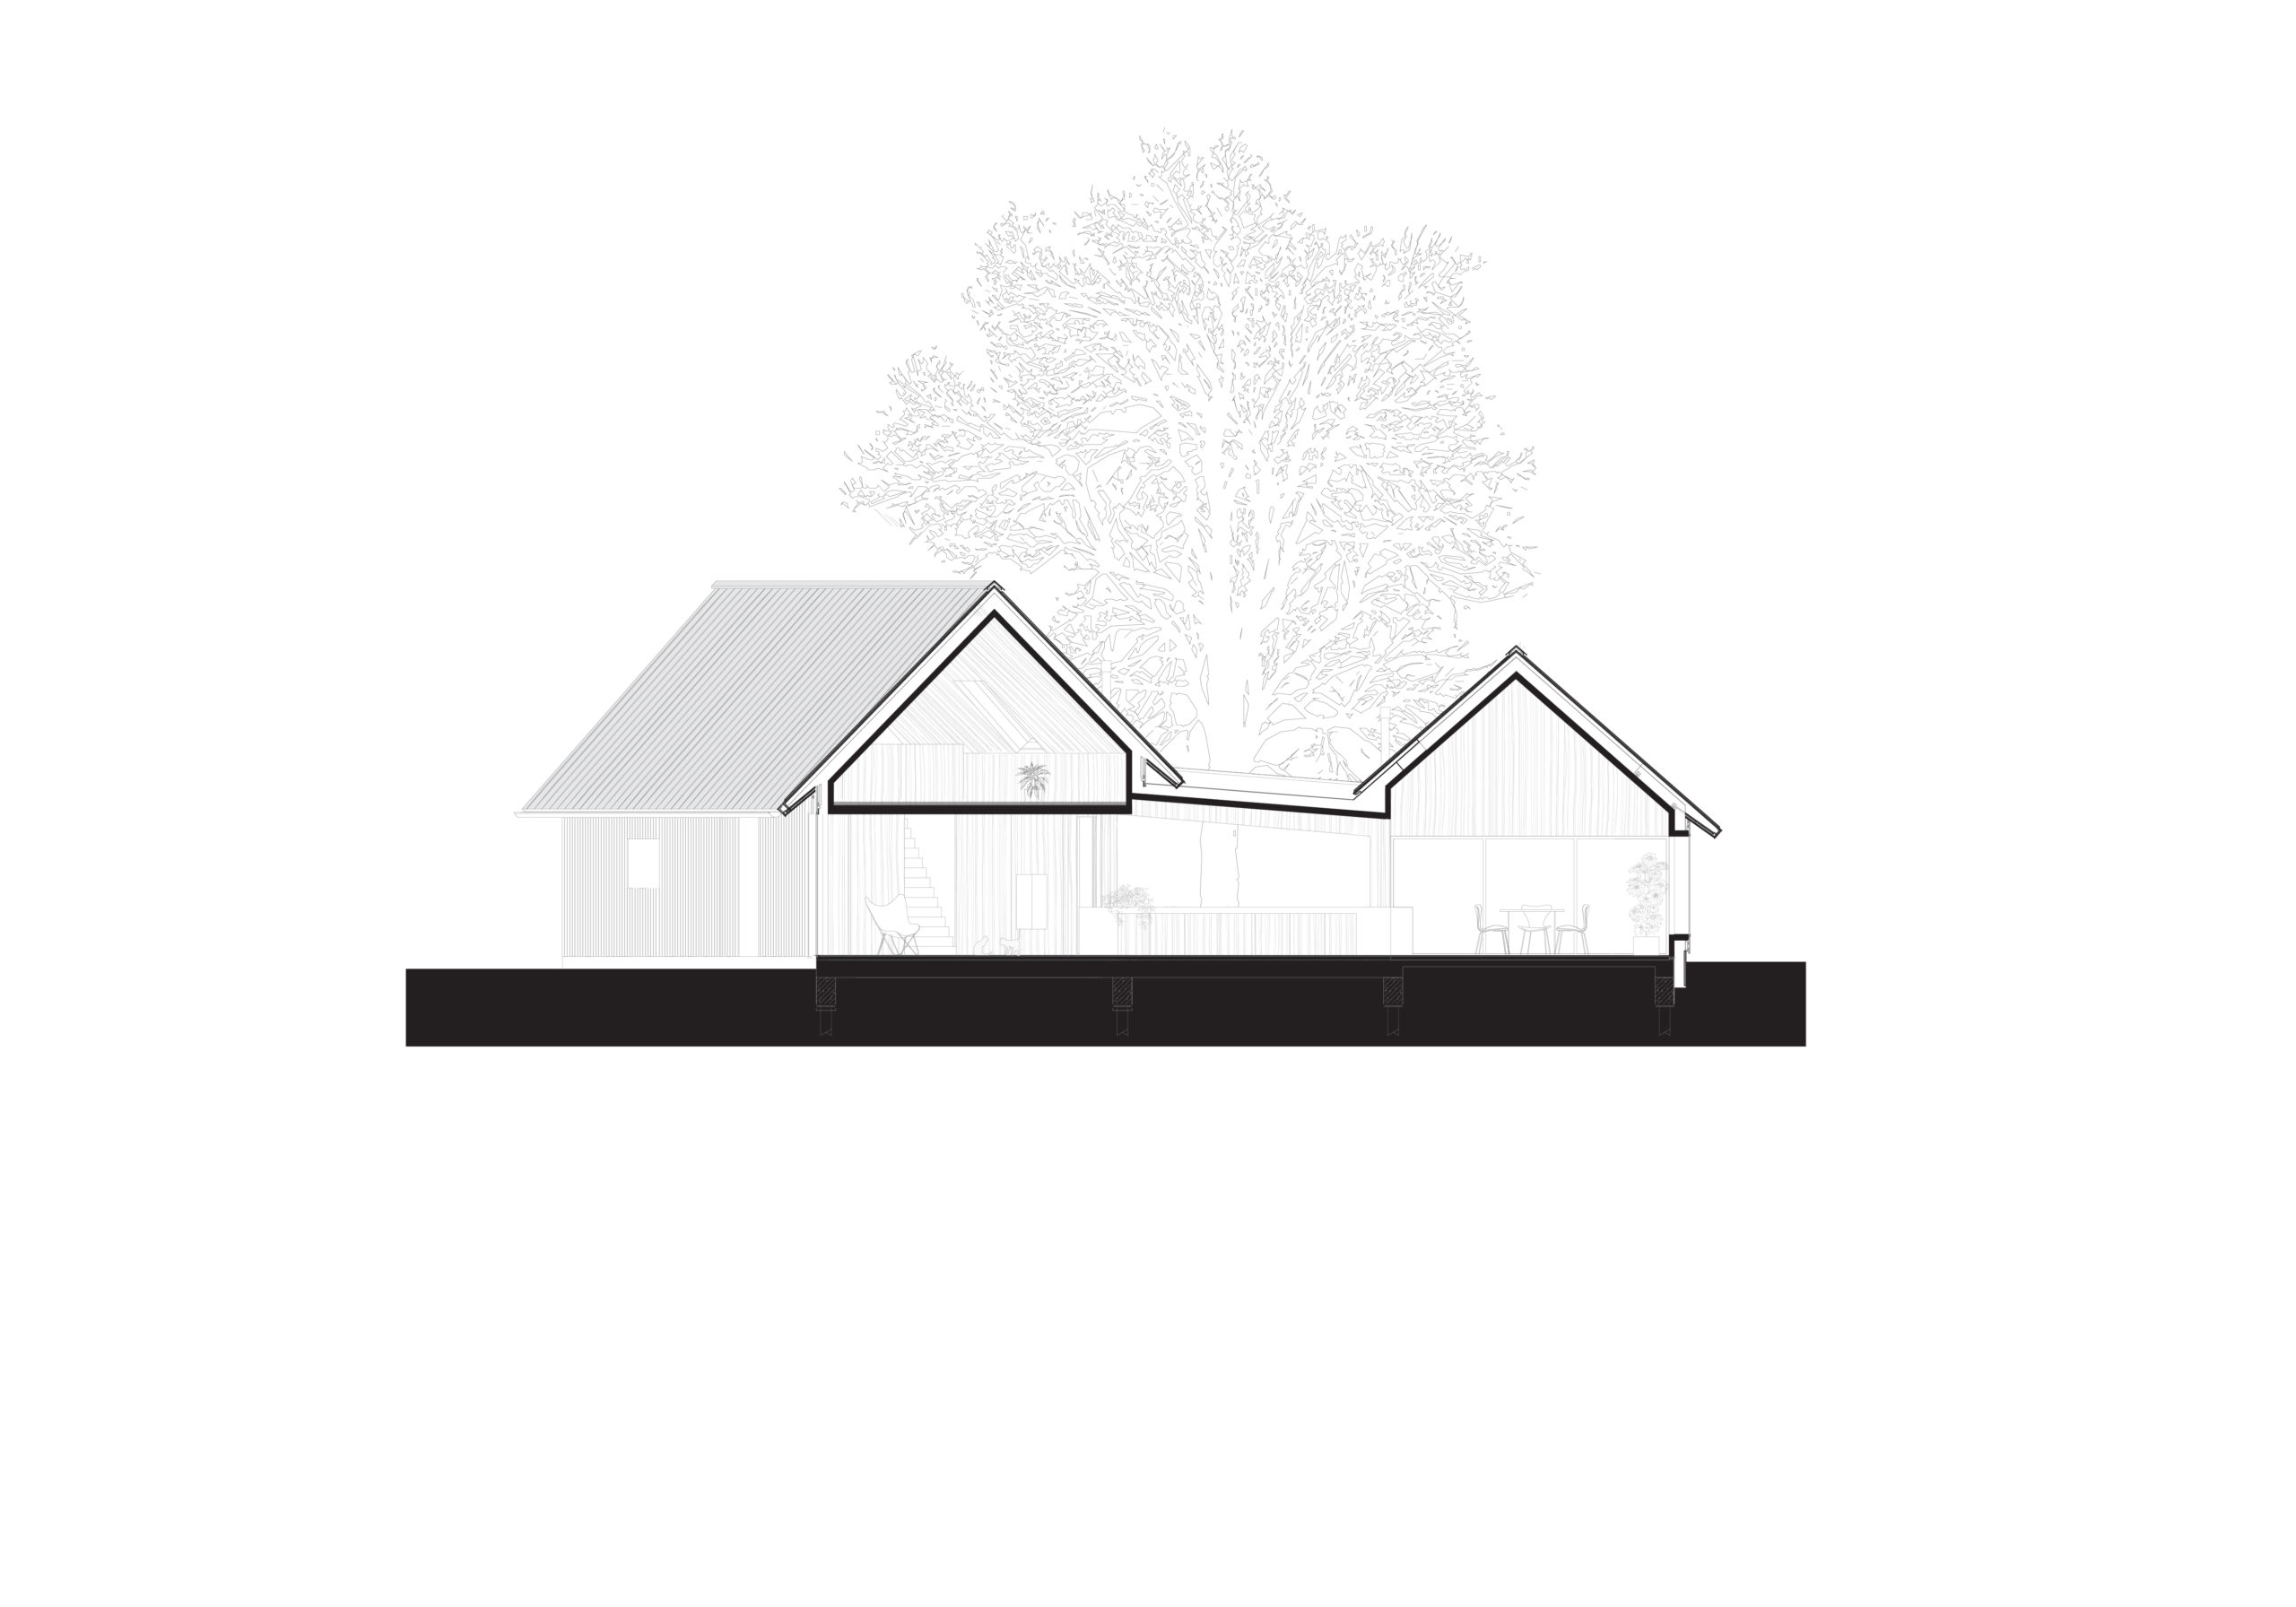 house on the lake architecture